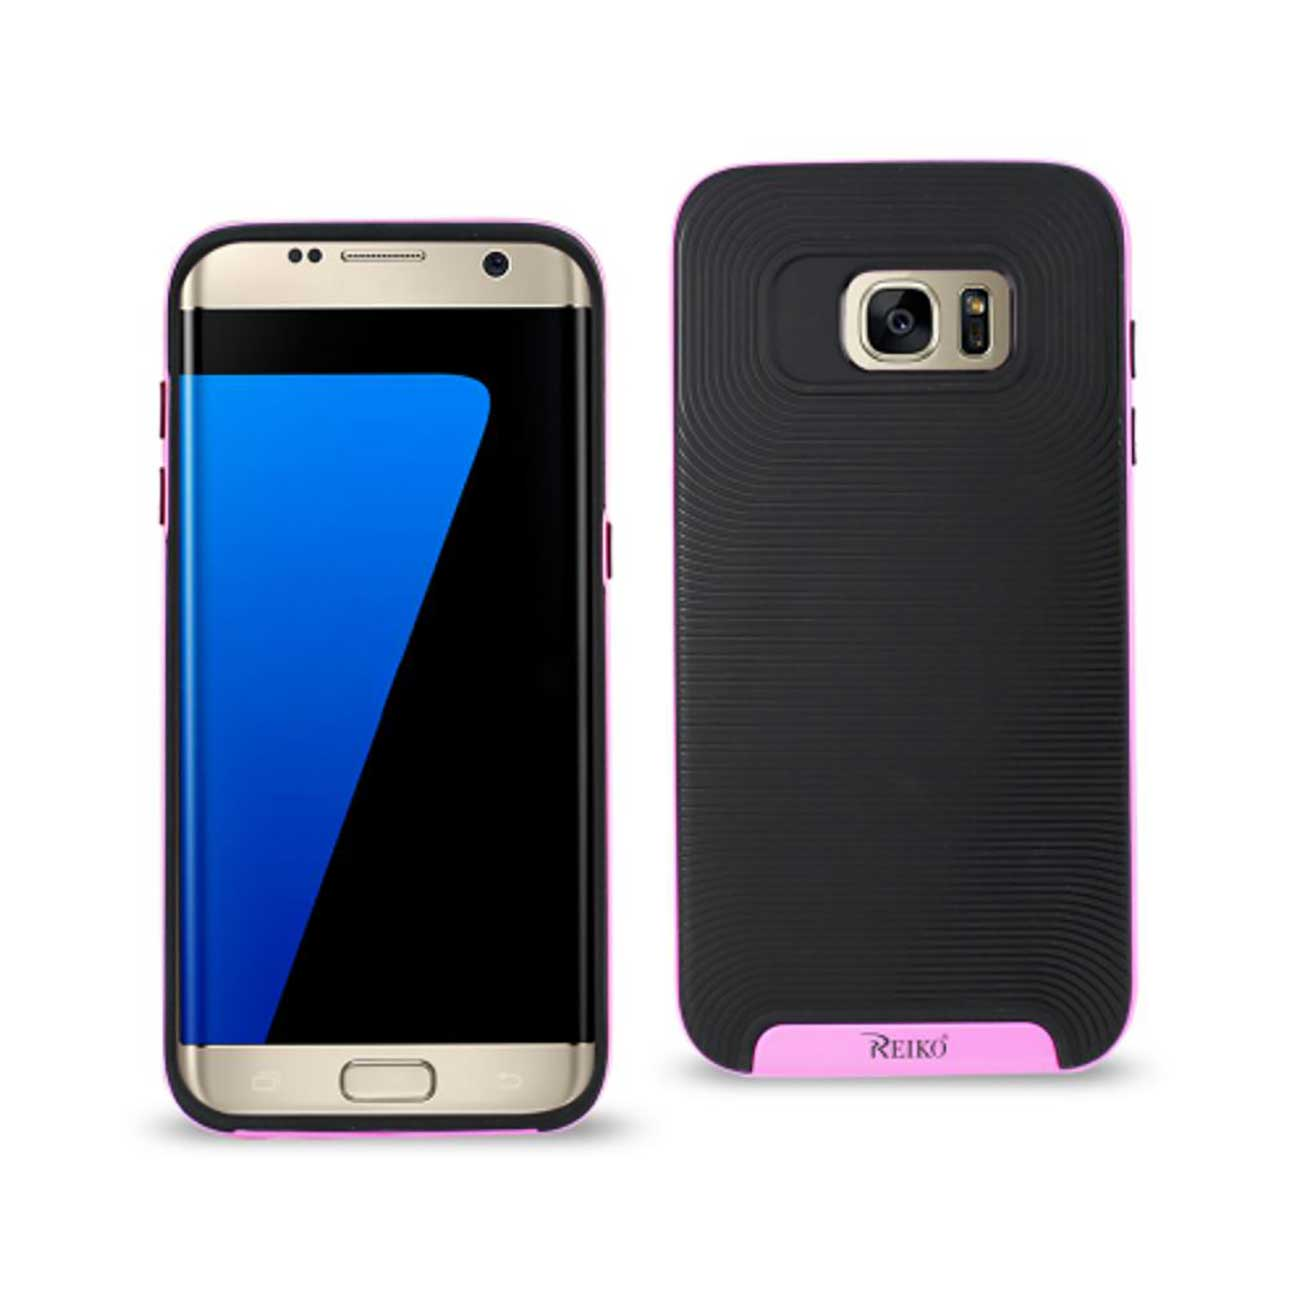 SAMSUNG GALAXY S7 SLIM ARMOR CASE WITH BUMPER FRAMES IN BLACK PINK